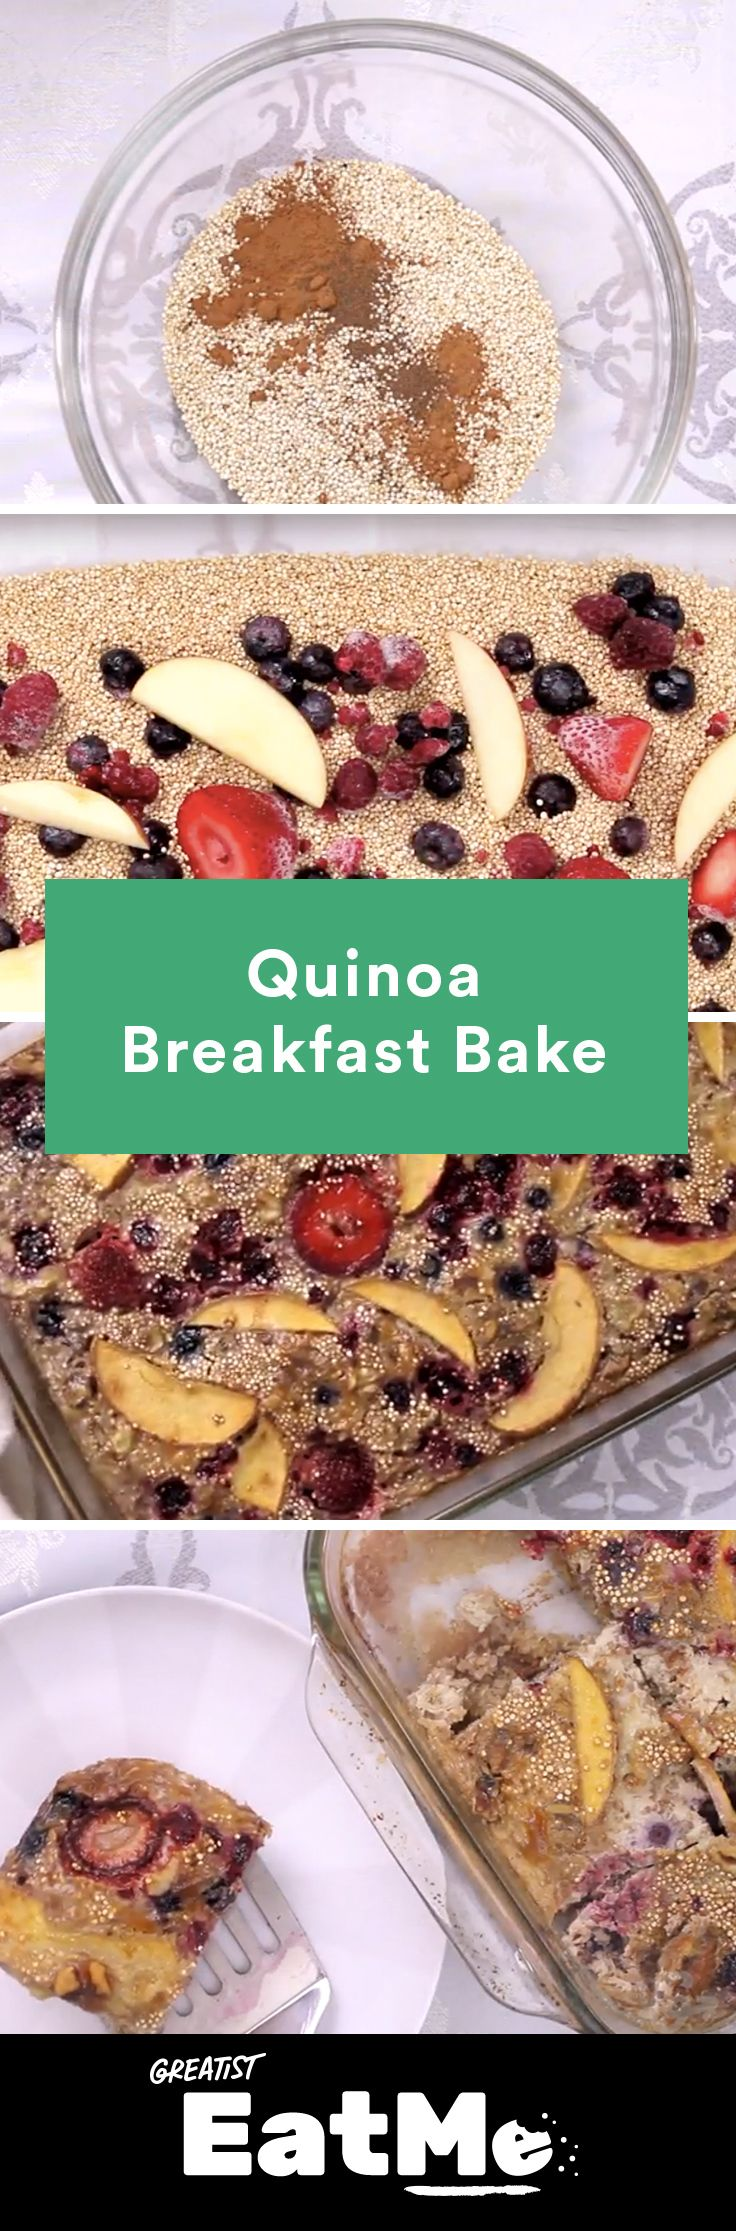 Eat Me Video: Quinoa Breakfast Bake